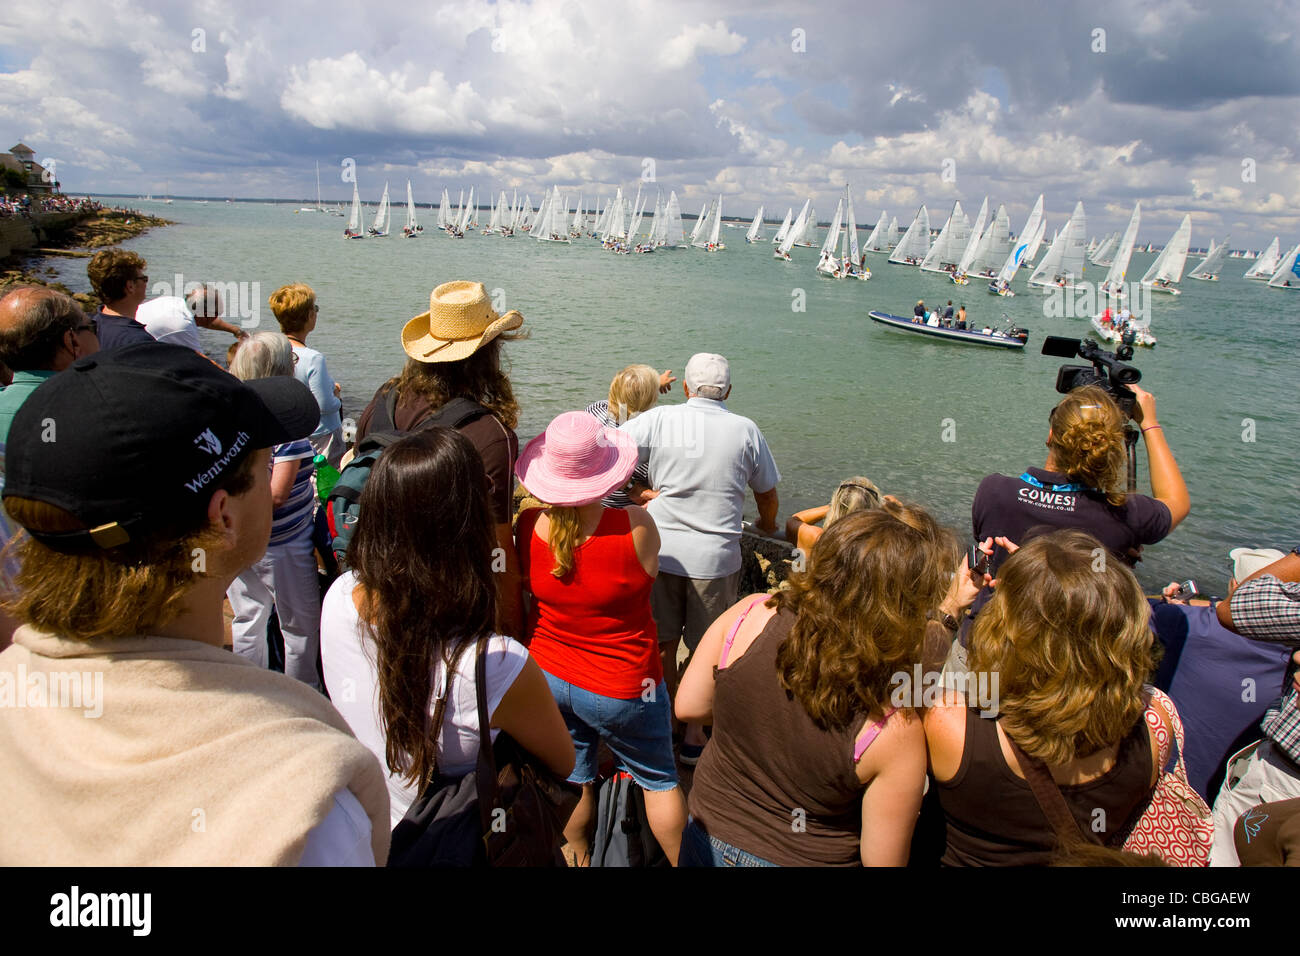 Royal Yacht Squadron, Start Line, Spectators, Yacht Racing, Cowes Week, Cowes, Isle of Wight, England, UK, - Stock Image